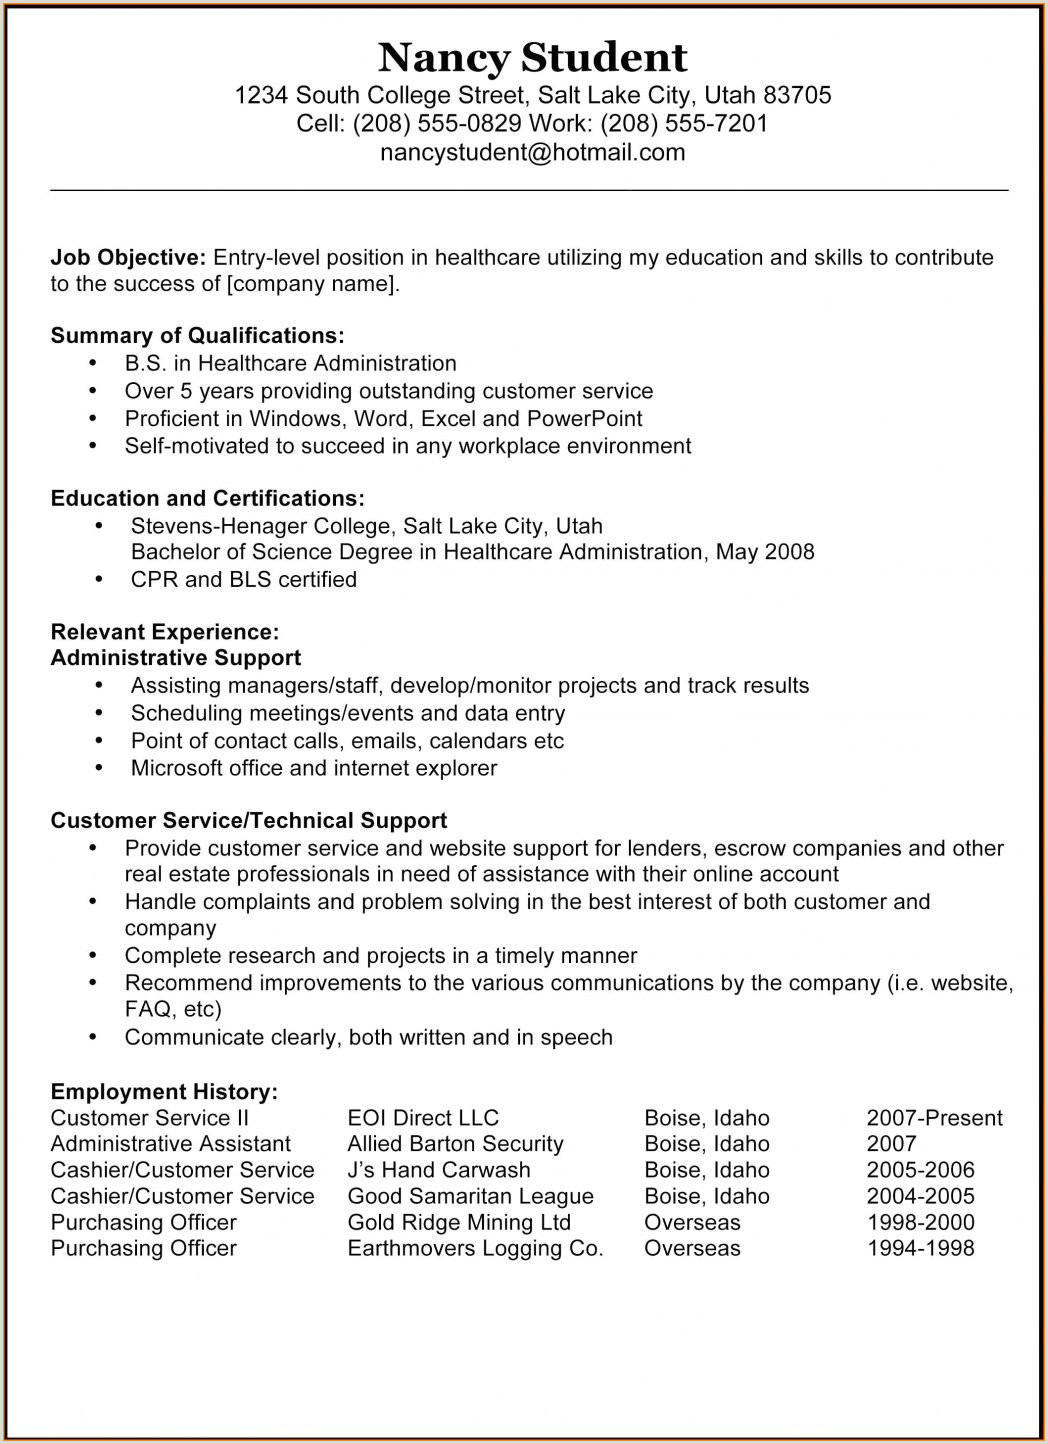 Resume for Work Experience Year 10 Resume for Receptionist with No Experience Unique Nanny